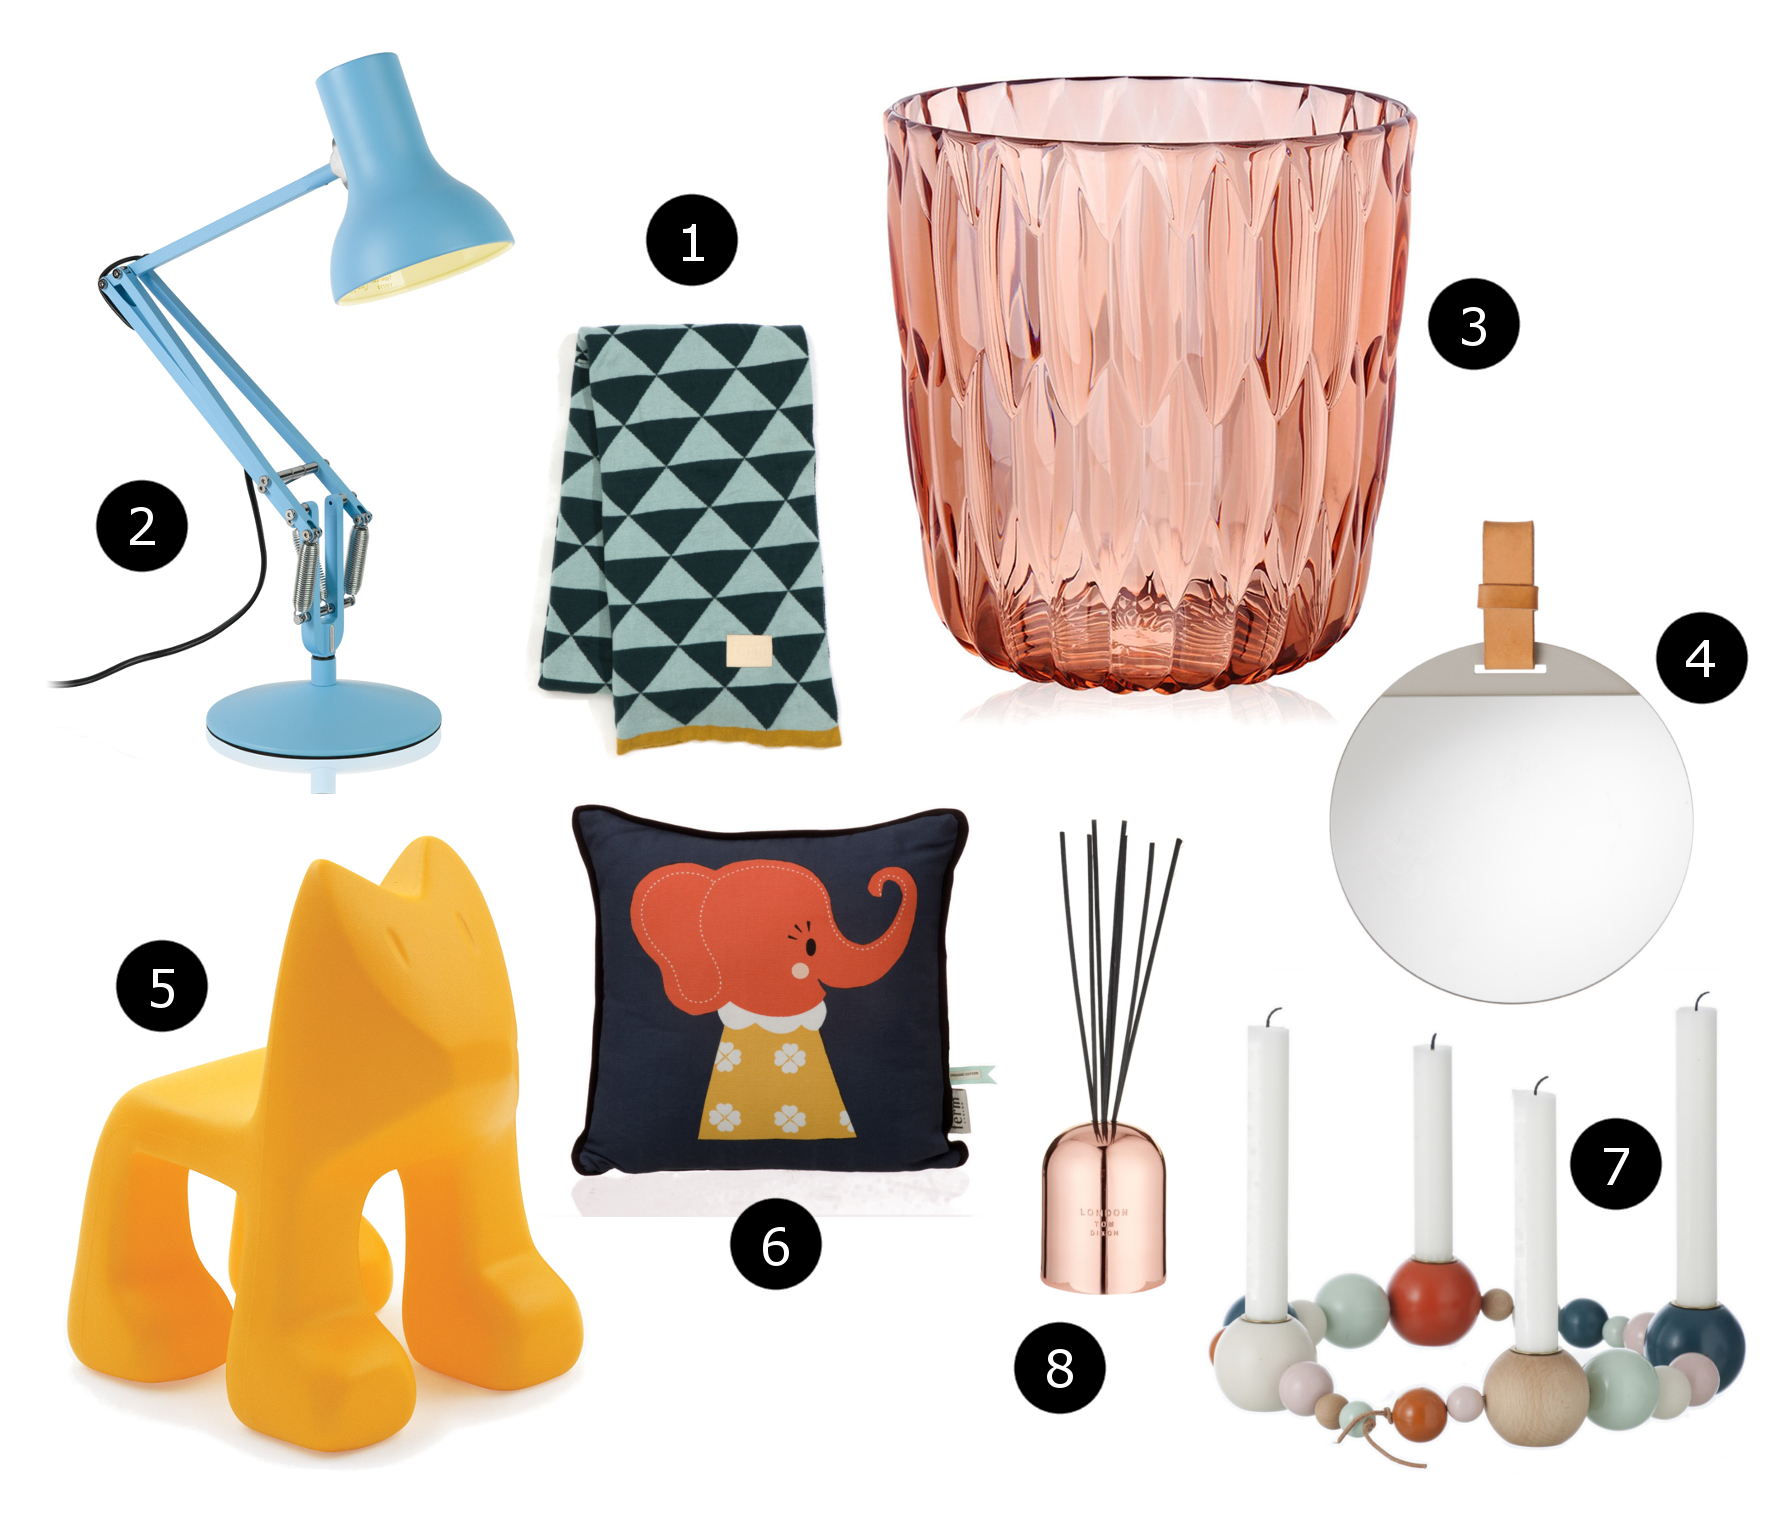 Ferm Living Remix Blanket, Anglepoise Type 75 Mini Desk Lamp, Kartell Jelly Vase in Rose, Ferm Living Enter Mirror, Magis Julian Chair, Ferm Living Elle Elephant Cushion, Ferm Living Candleholder String, Tom Dixon Scent London Diffuser